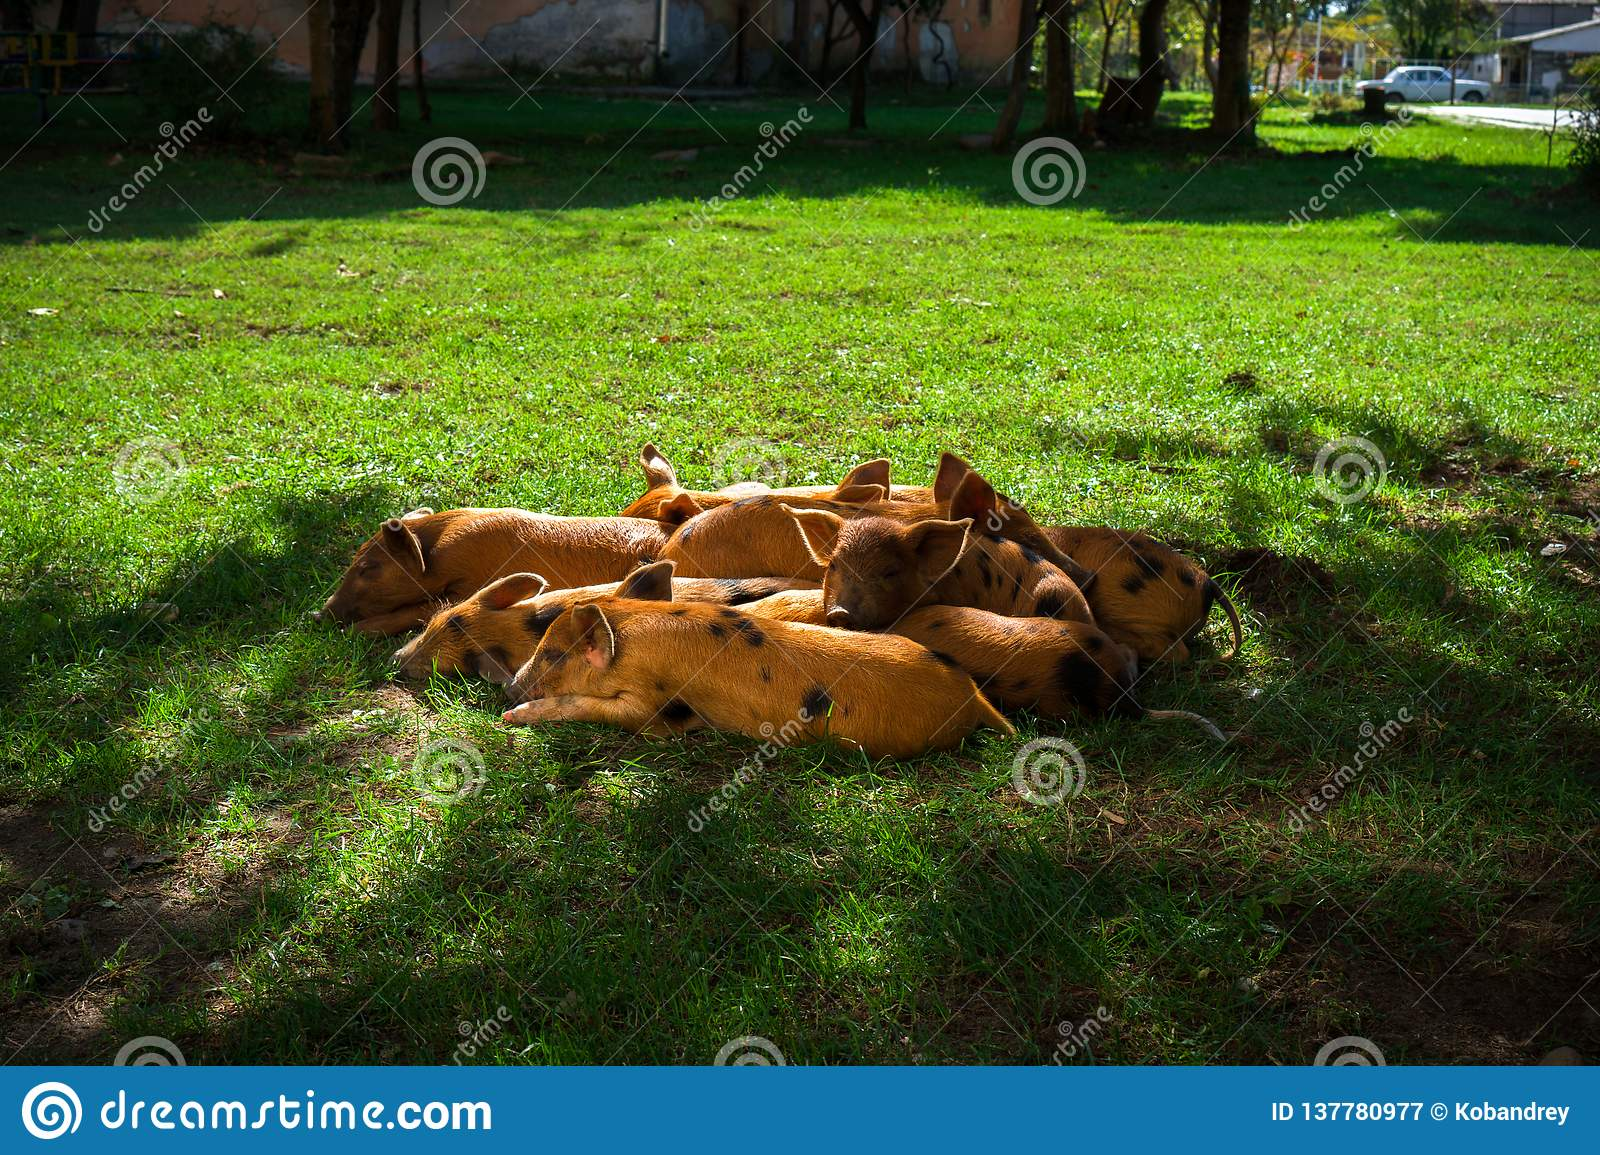 Little spotted piglets lie on the grass on a Sunny day